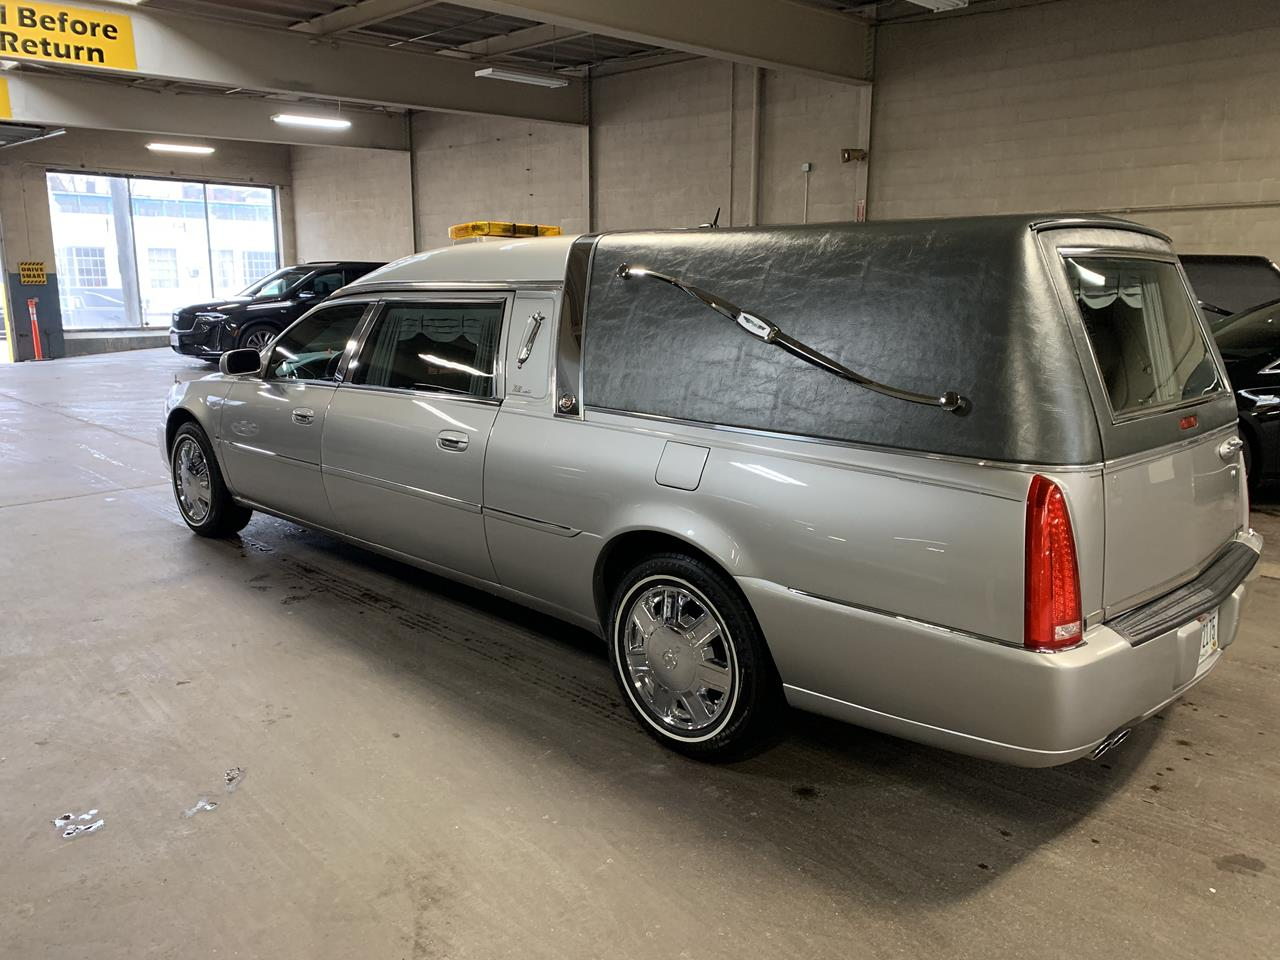 2006 Cadillac Eagle Kingsley Hearse 900 3